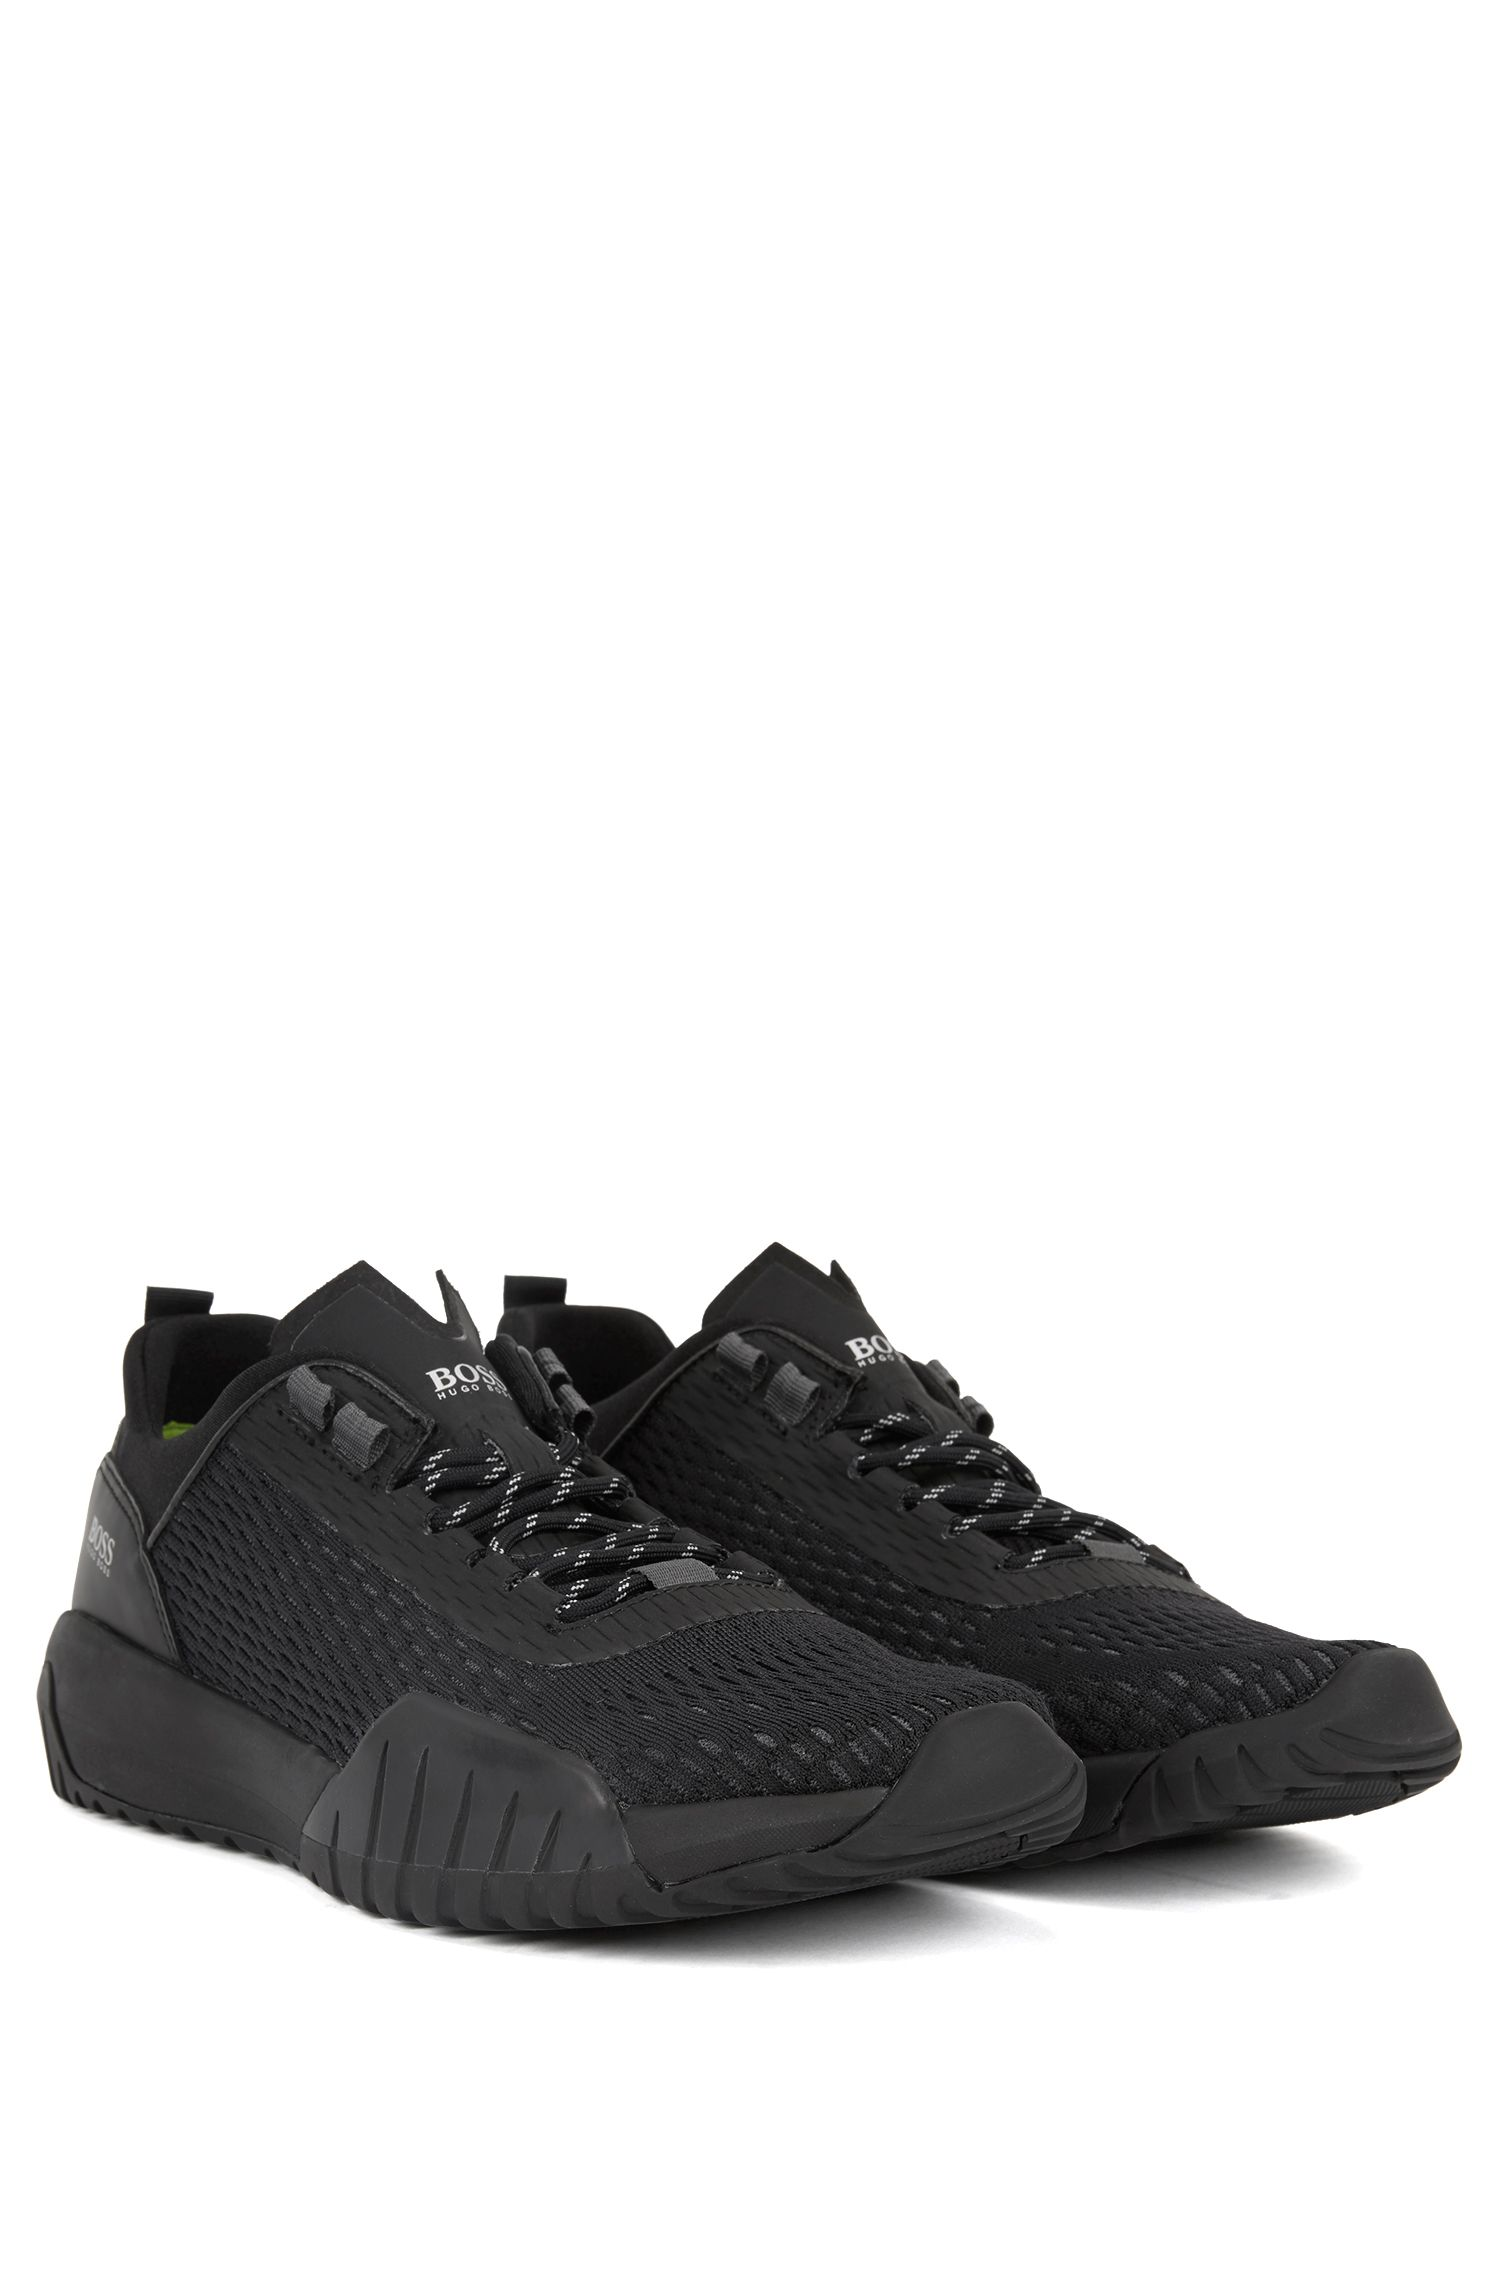 Hugo Boss - Running-inspired trainers with Strobel construction and reflective laces - 2